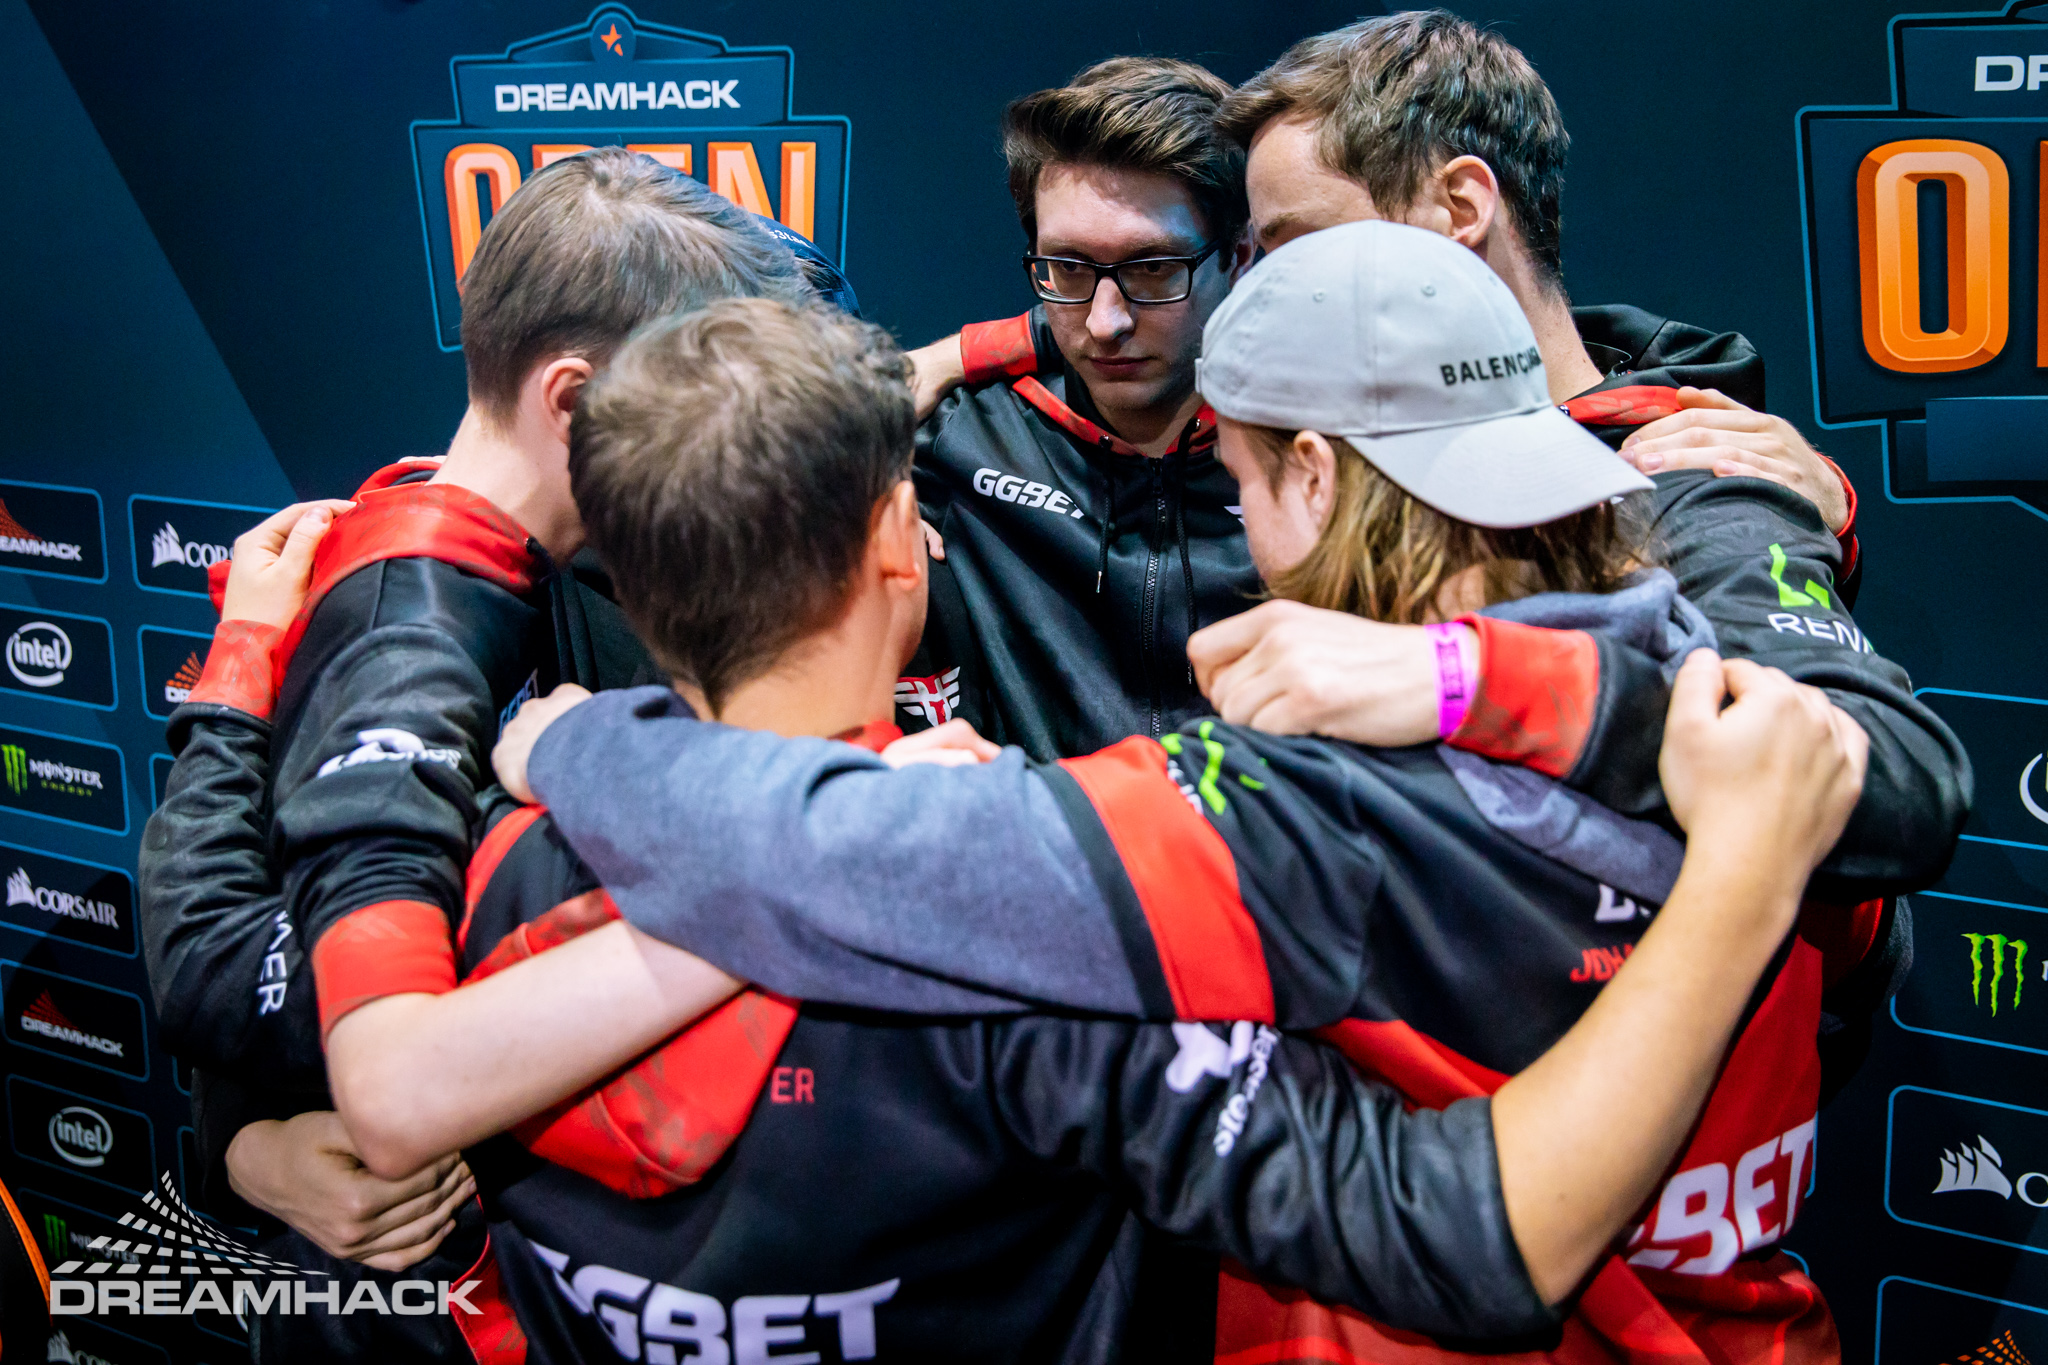 Heroic in a huddle at DreamHack Leipzig 2020